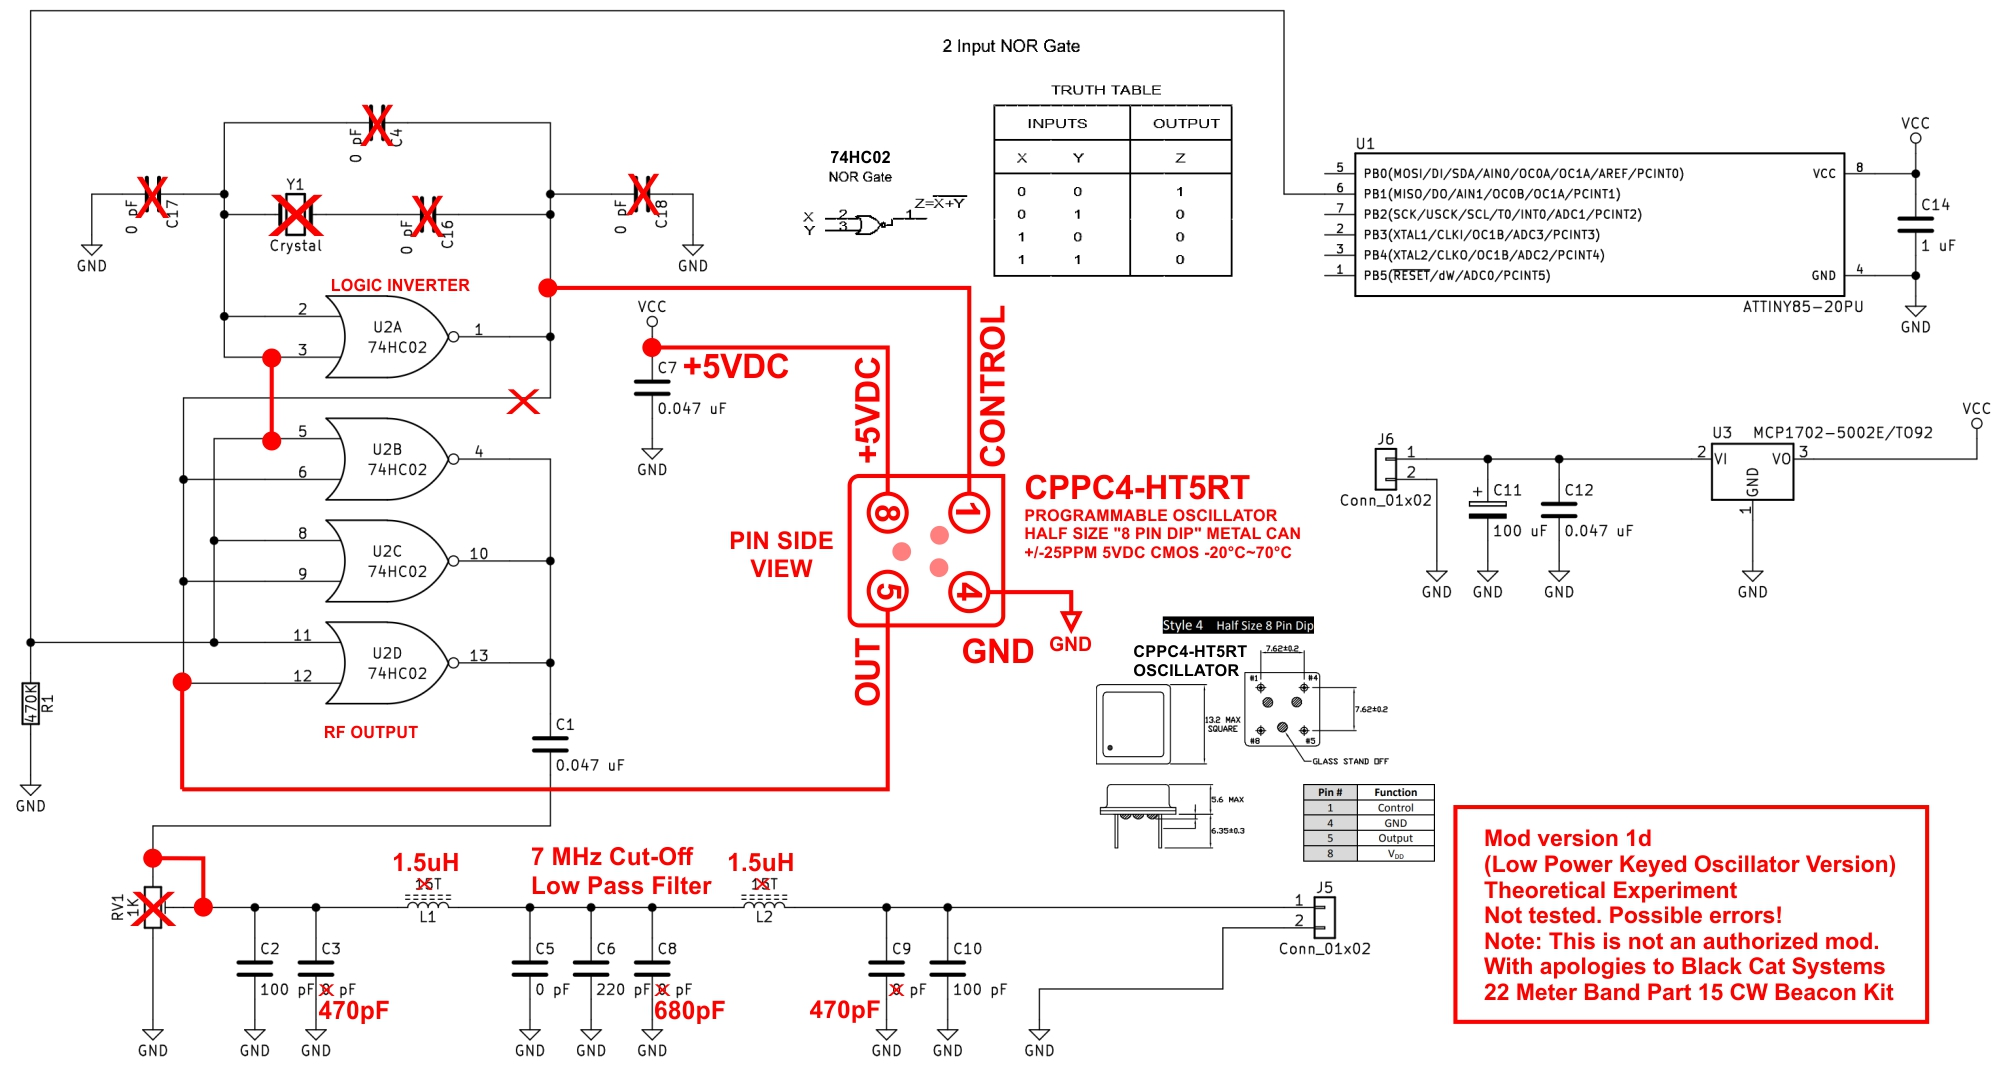 Show Posts Exo Very Simple Oscillator 7700 Hz Electronics And Computer System Below Large Size Schematic Of Theoretical Mod Version 1d